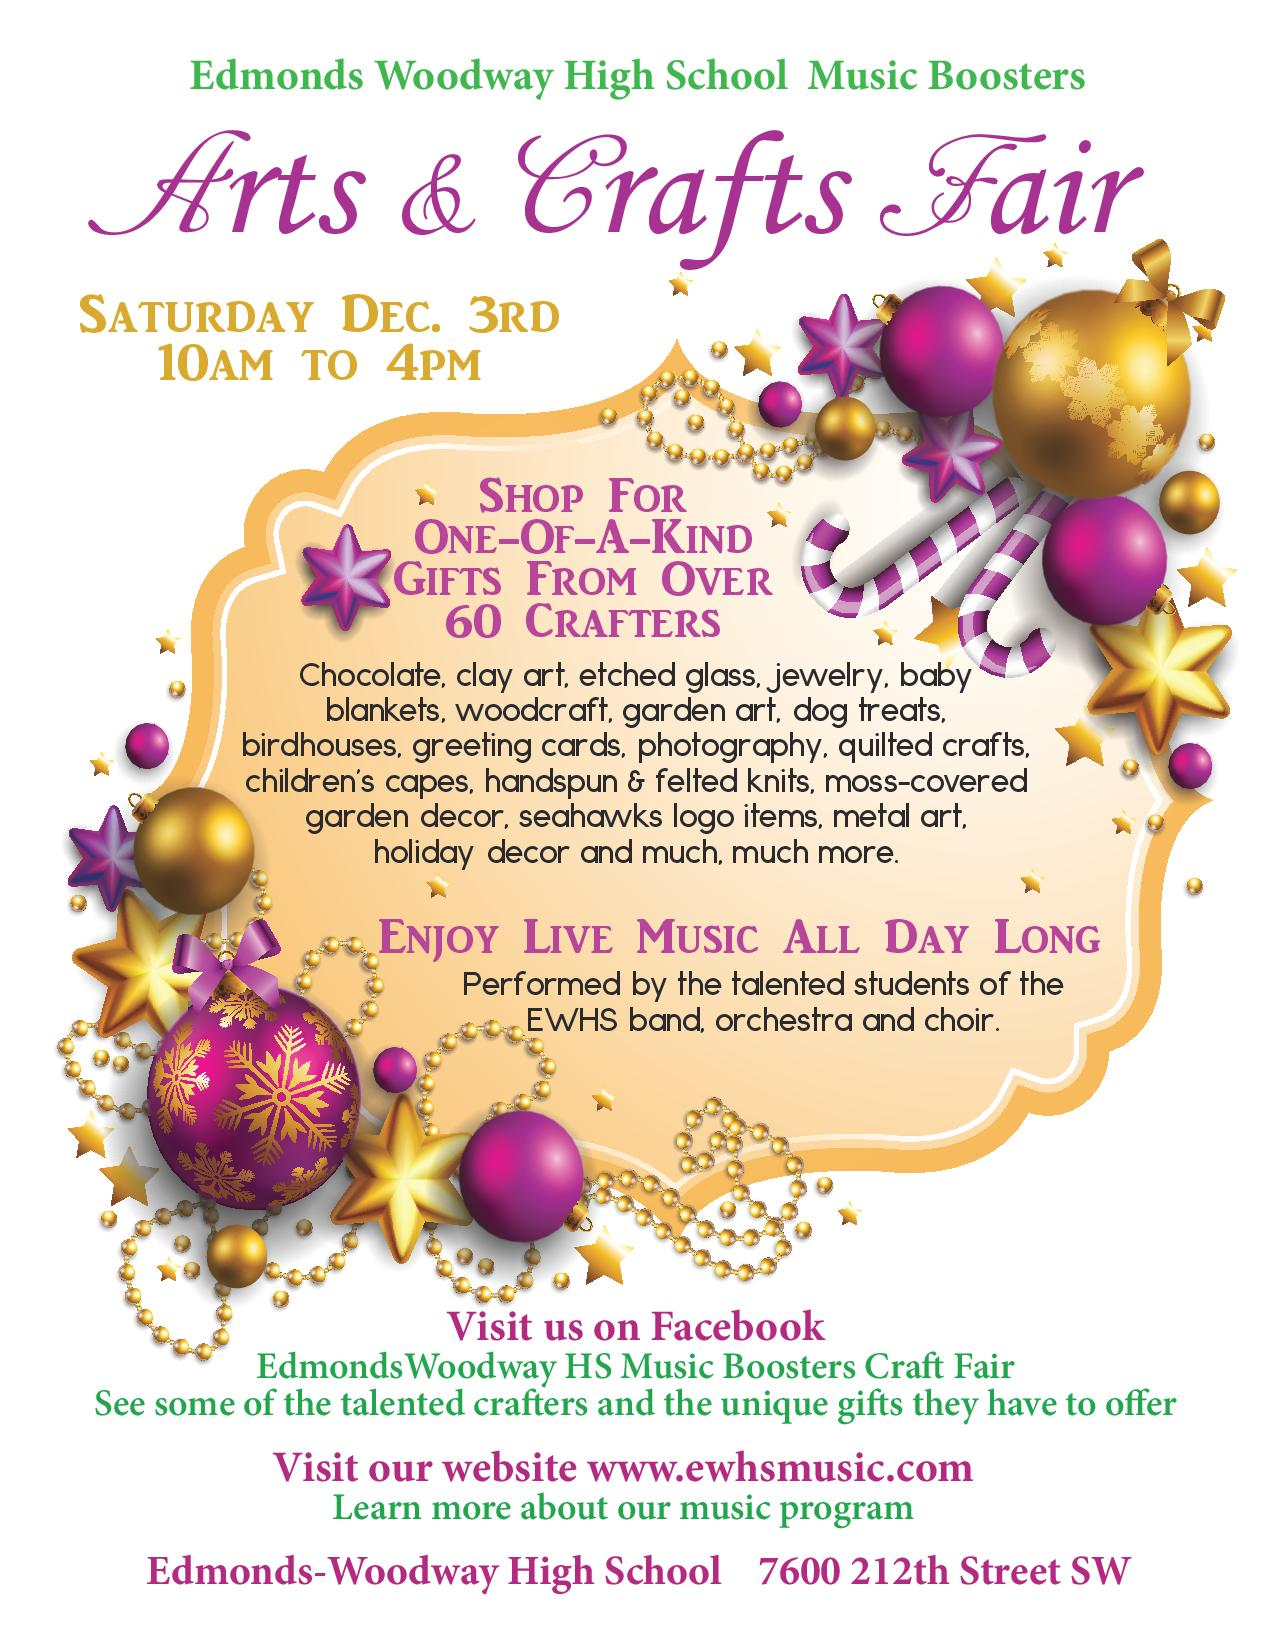 Support M(EW)sicians at the Music Boosters Crafts Fair Dec. 3rd!